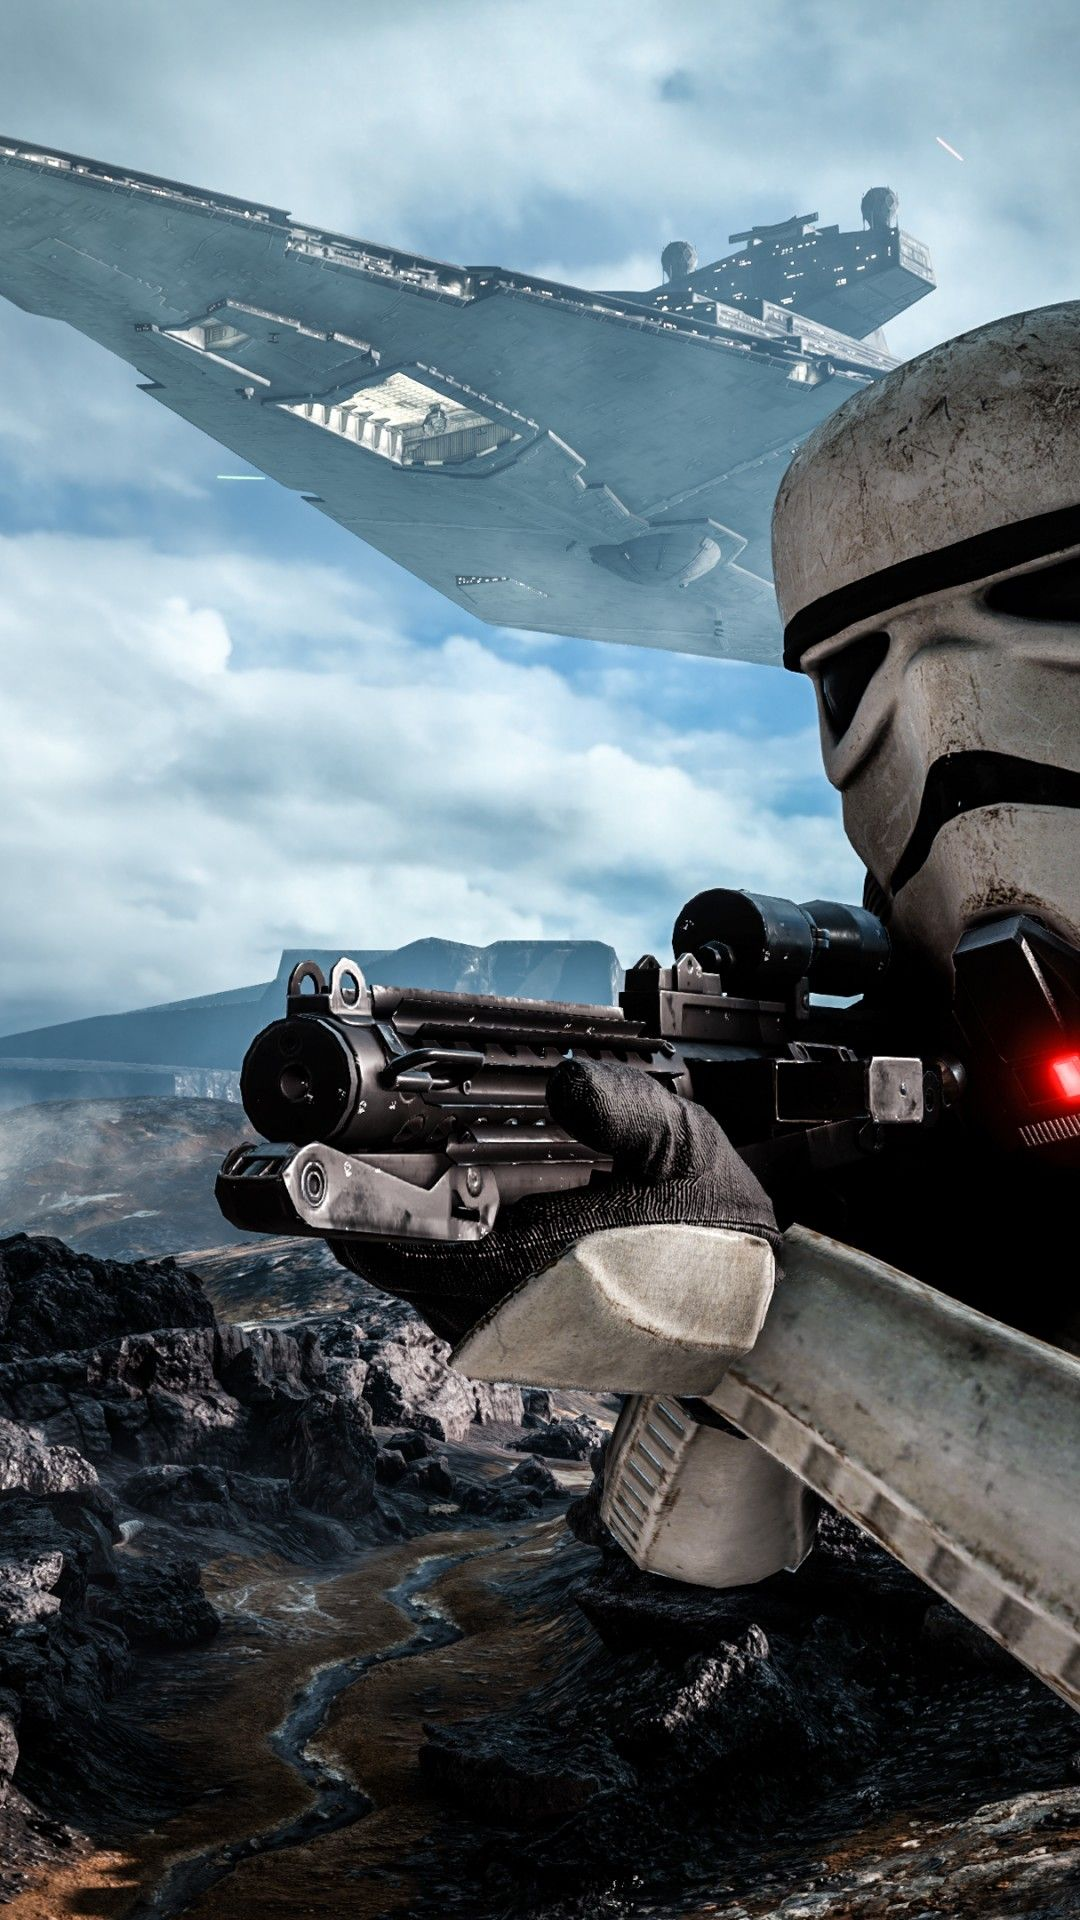 Star Wars Battlefront Wallpaper Mobile Star Wars Battlefront